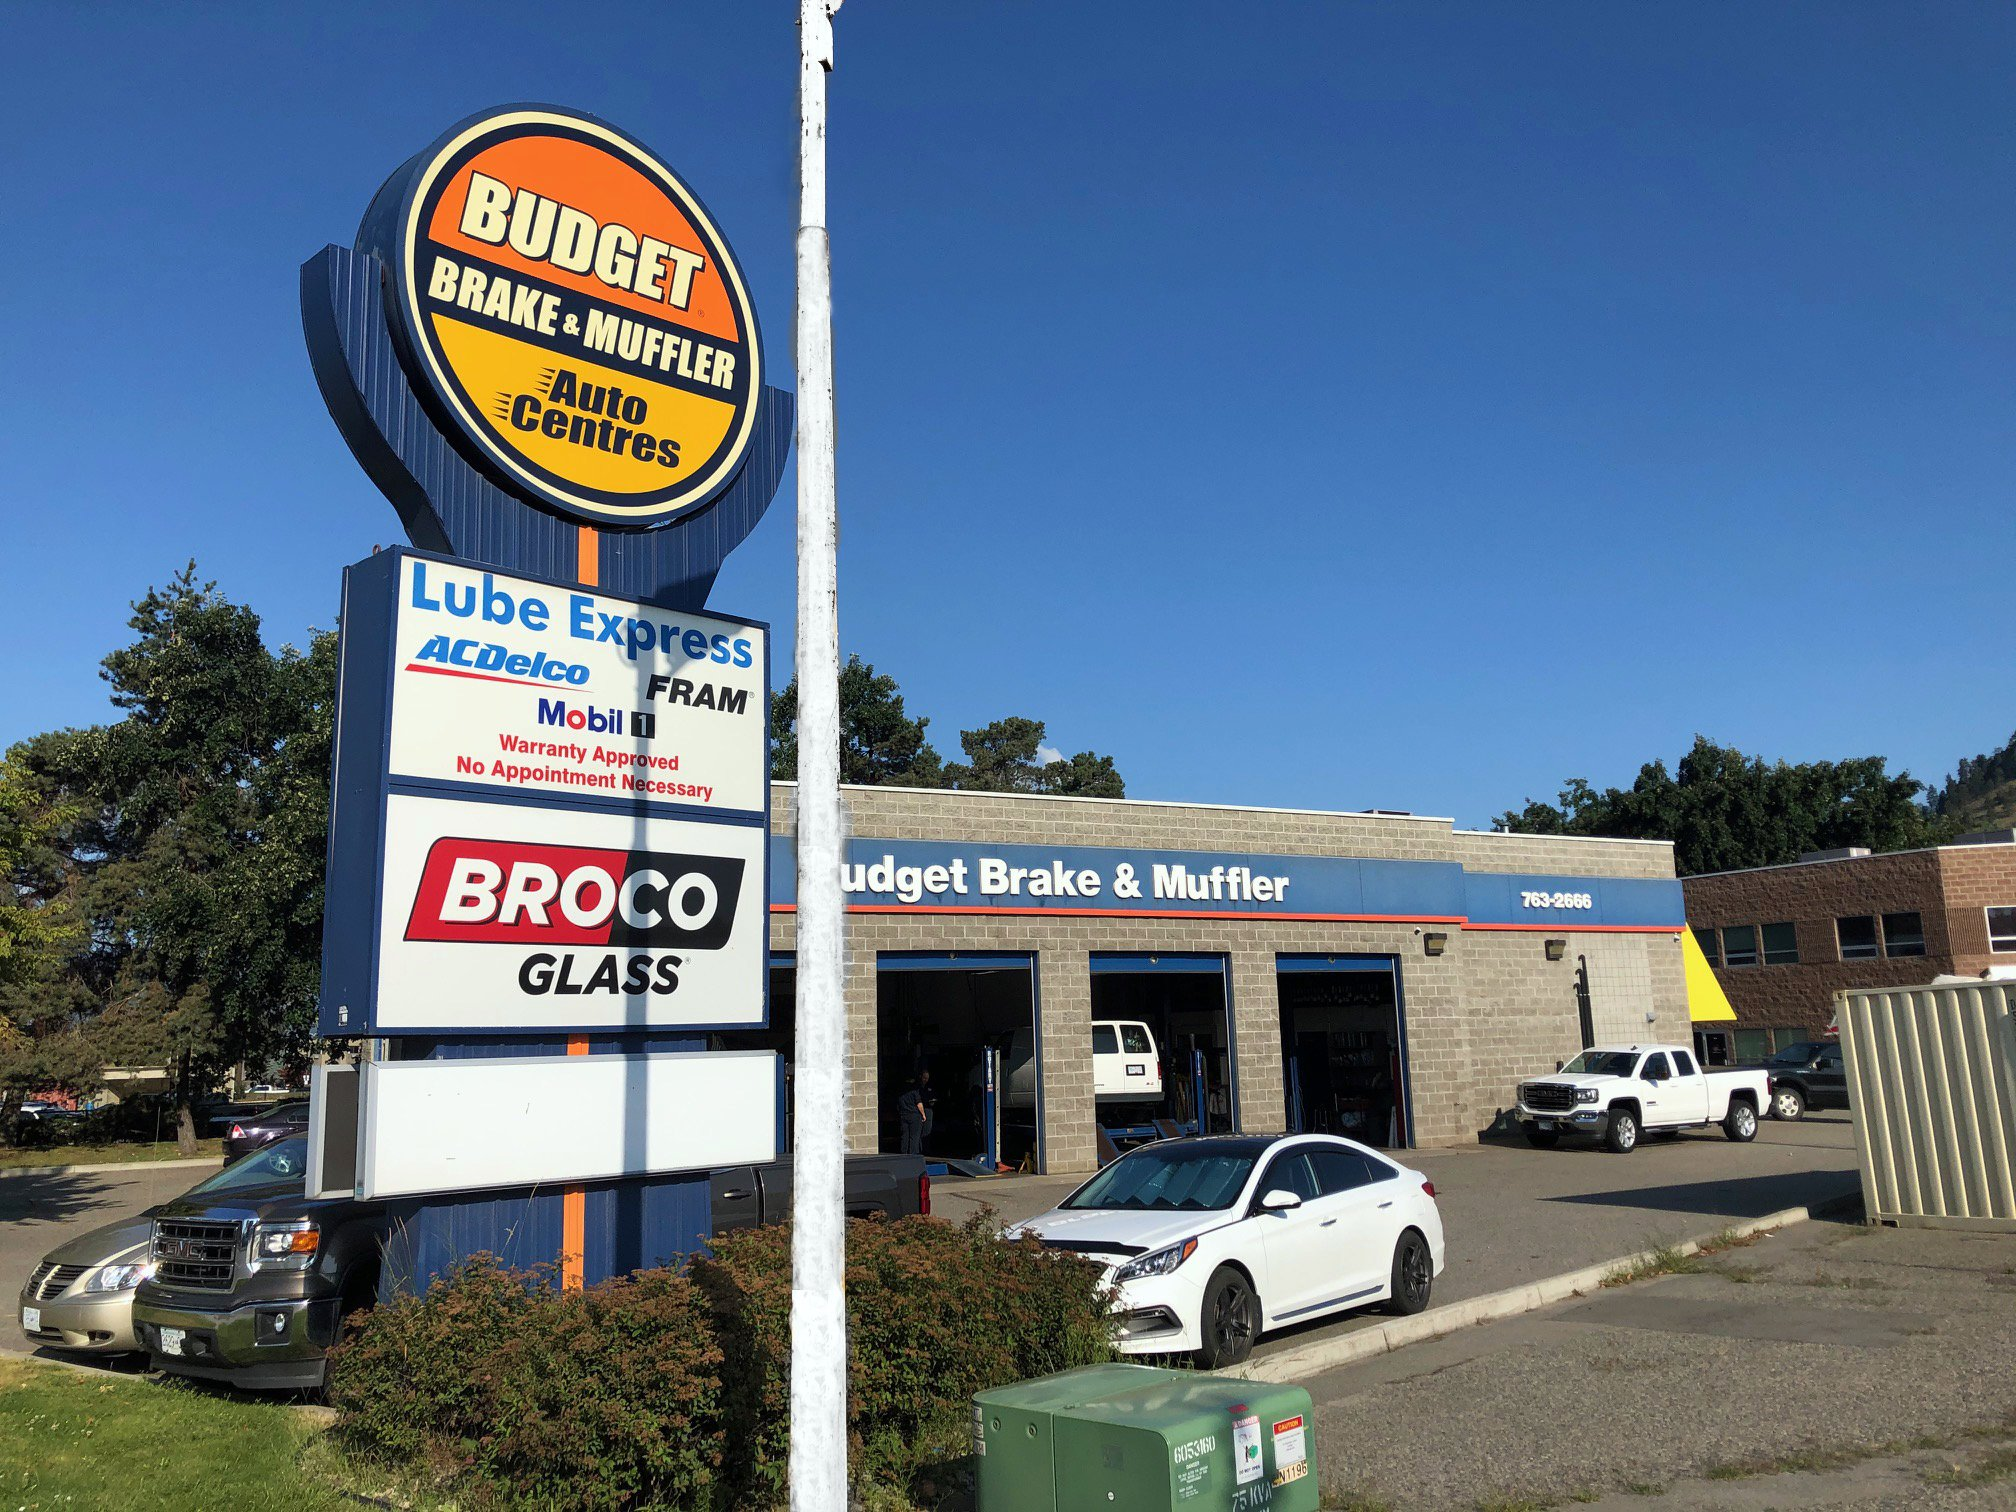 2305-2307 Enterprise Way, Kelowna, BC - Income Producing Industrial Property with Highway Frontage